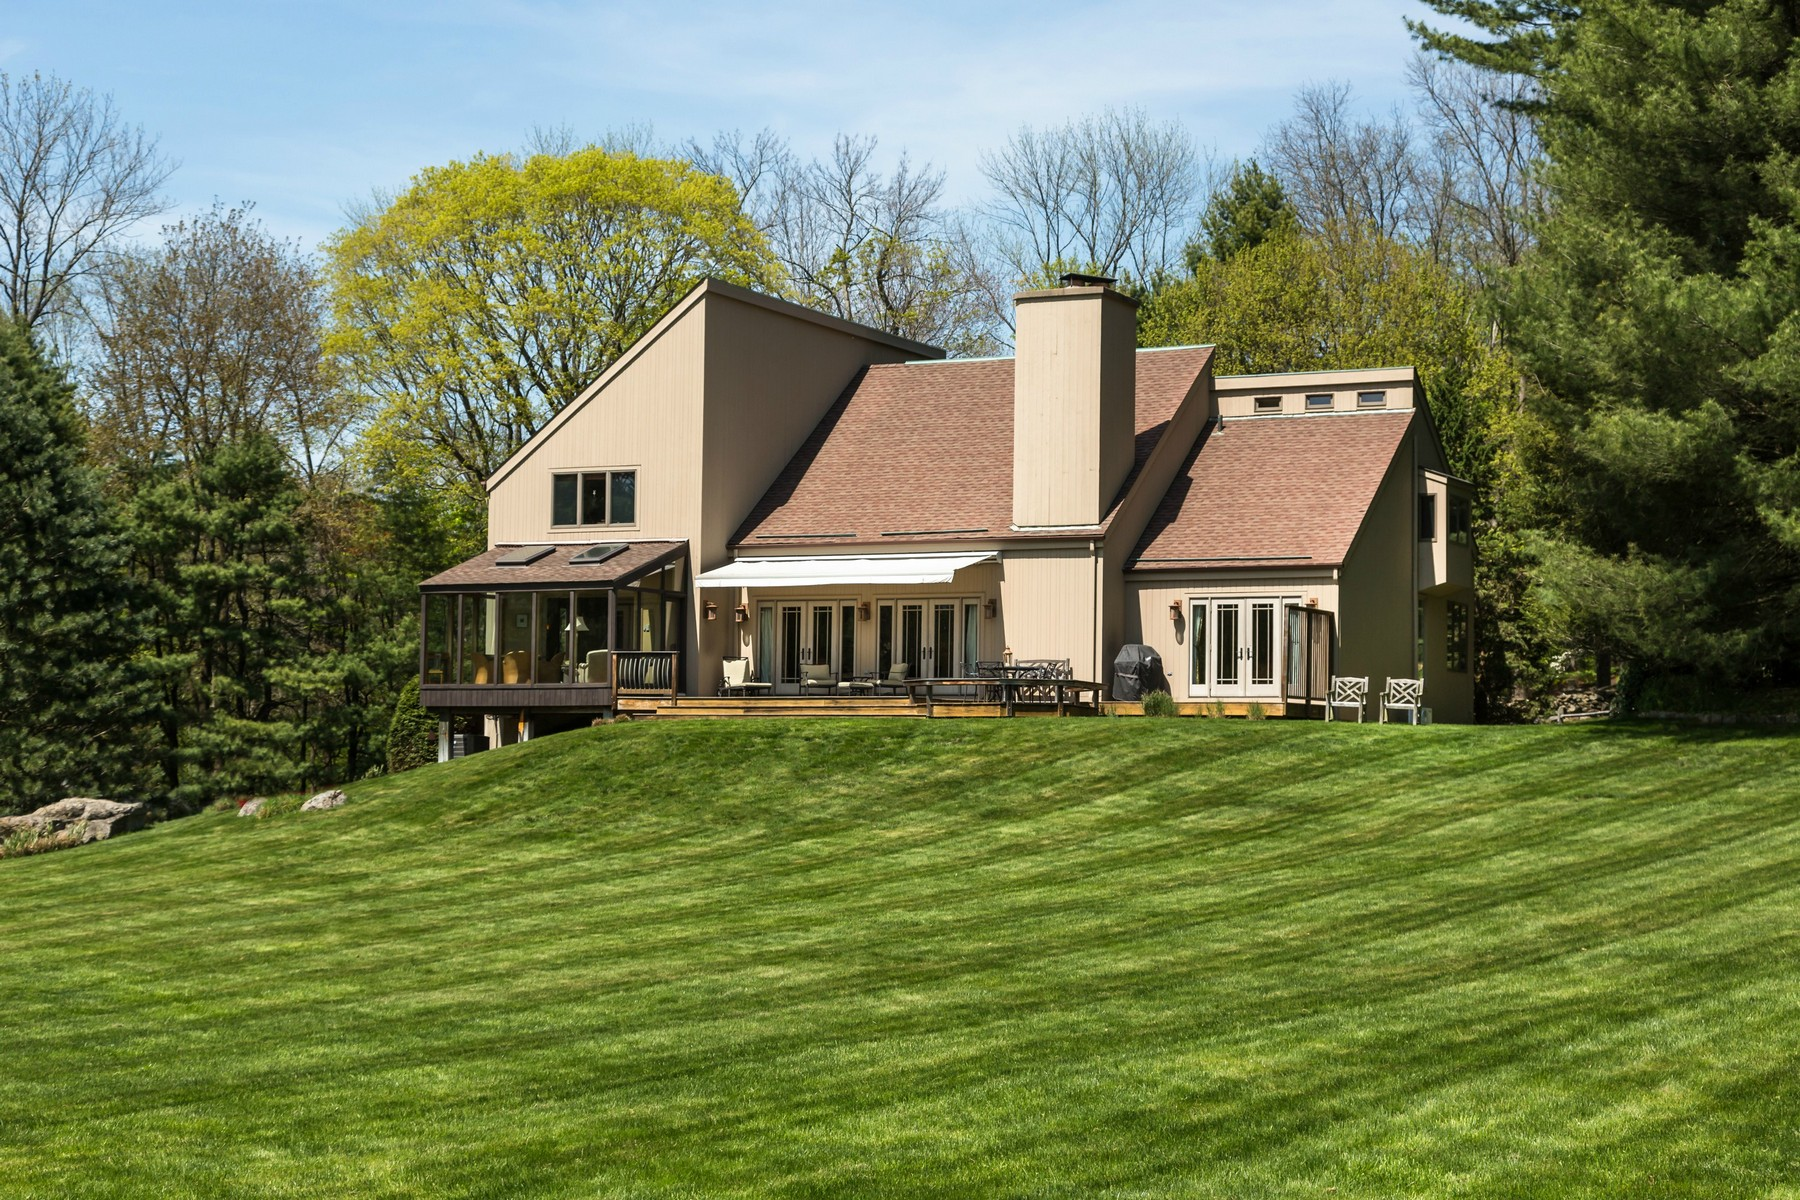 Single Family Home for Sale at Sophisticated Greenfield Hill Contemporary 1313 Old Academy Road Fairfield, Connecticut, 06824 United States